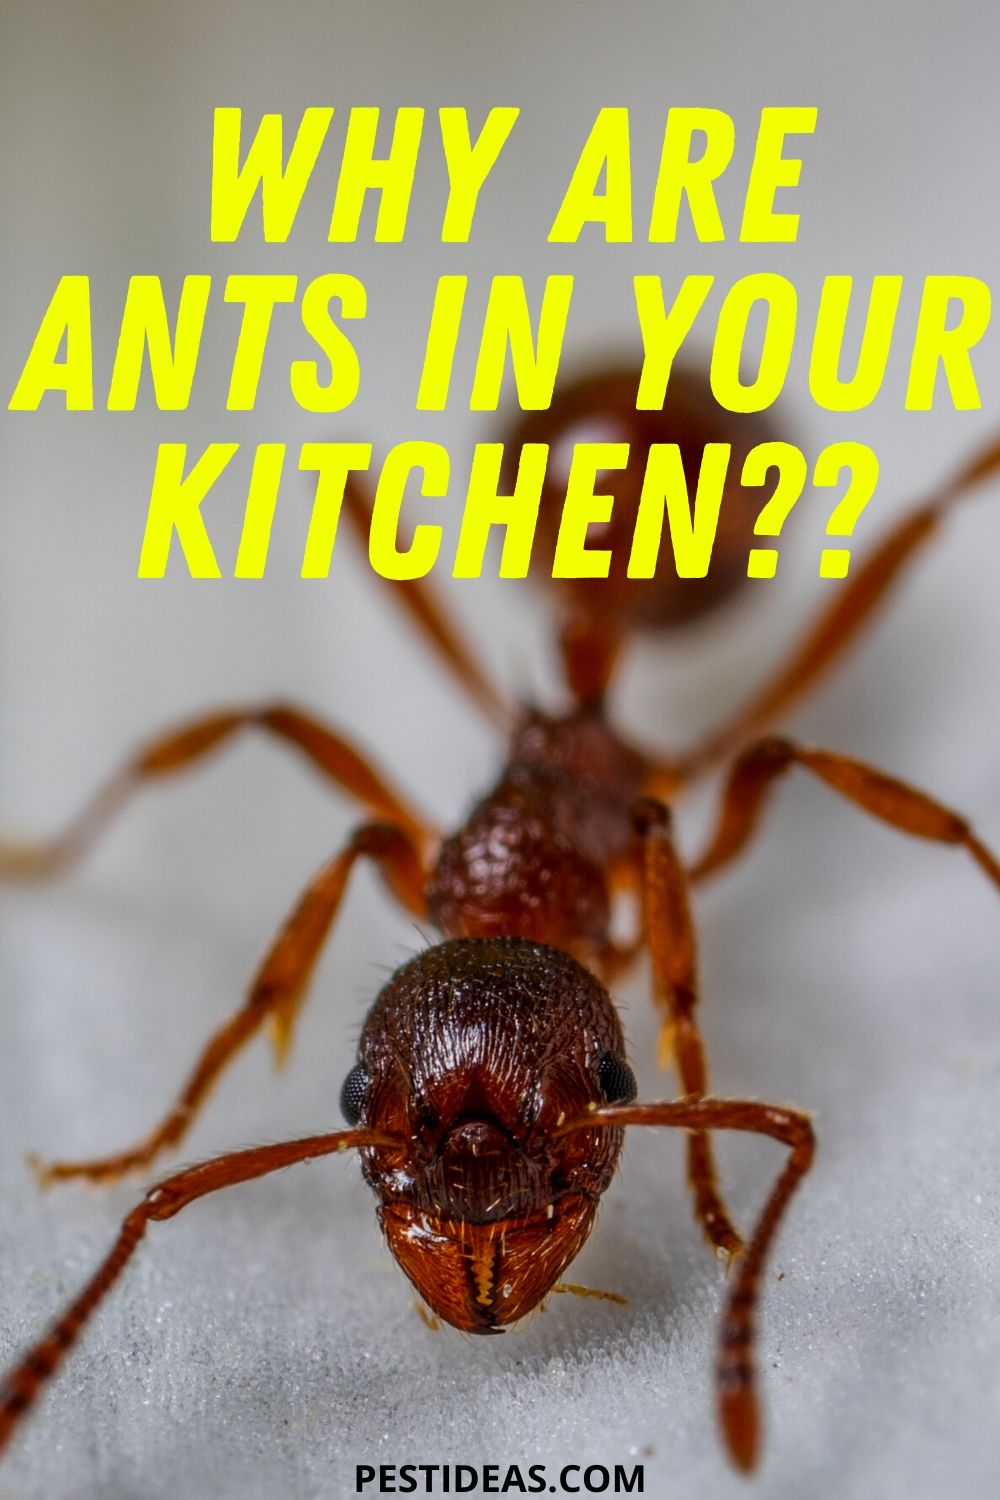 Why are Ants in Your Kitchen